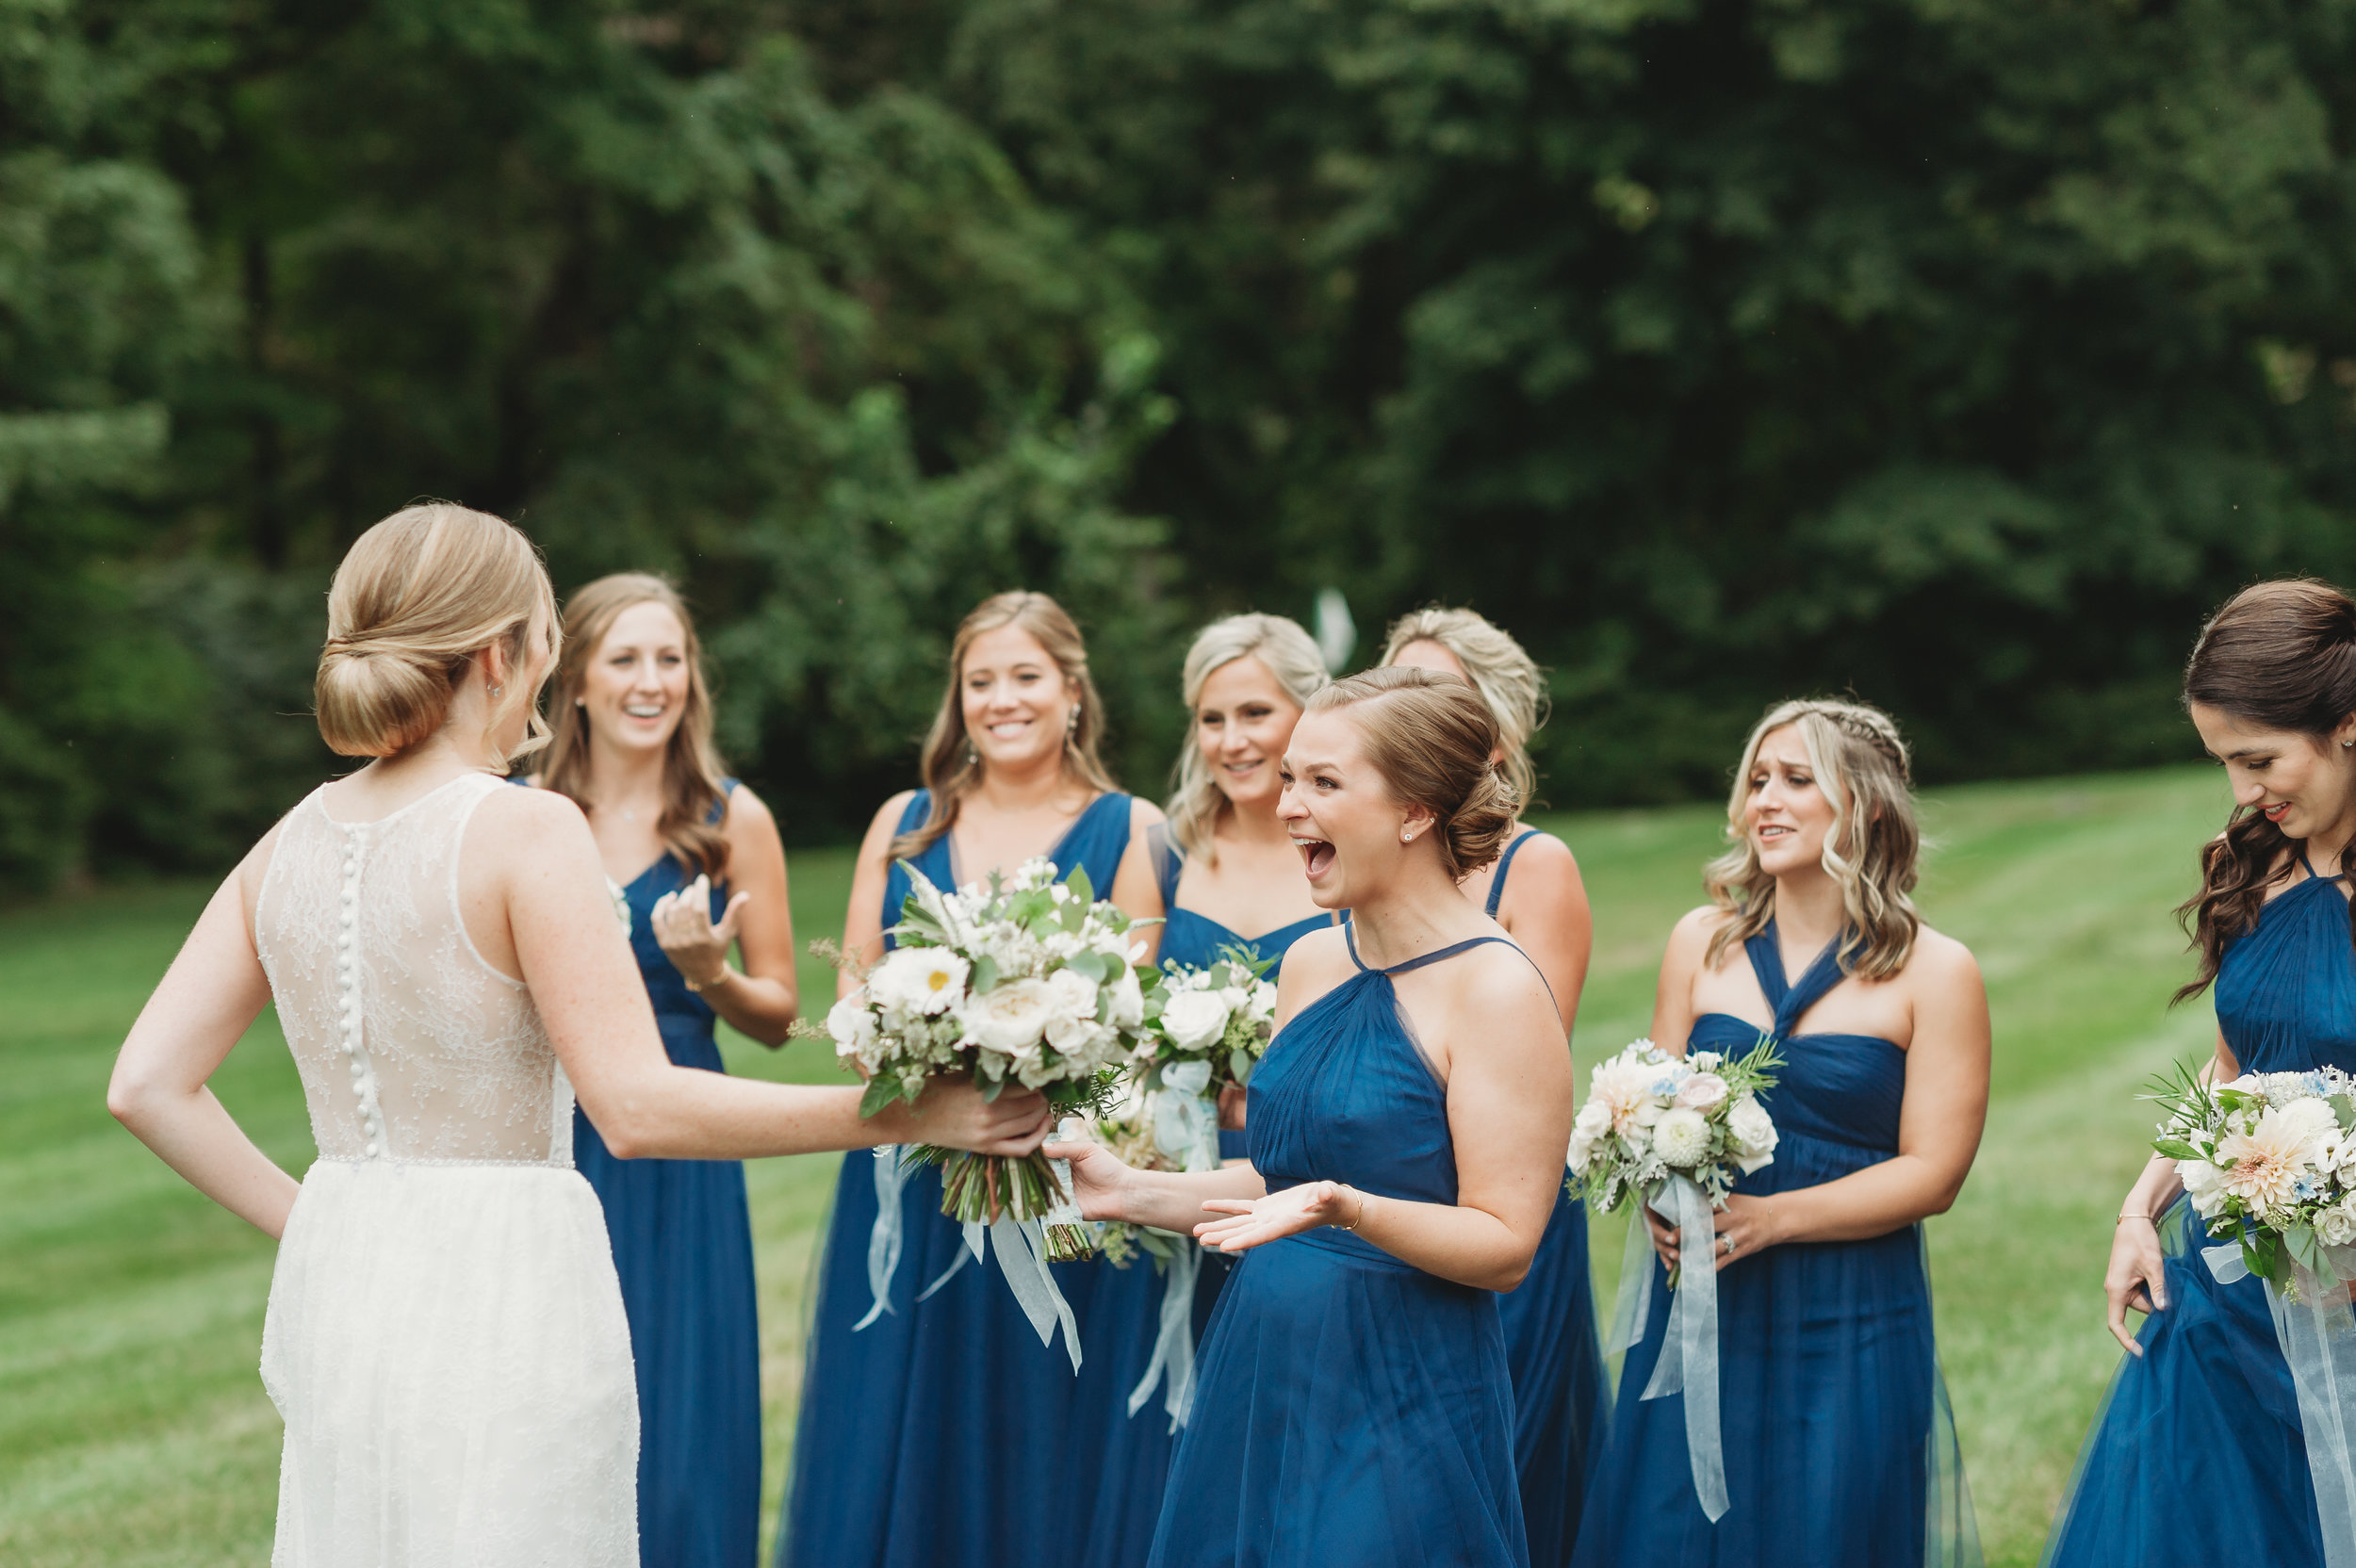 bridesmaids and bride_ct classic wedding.jpg